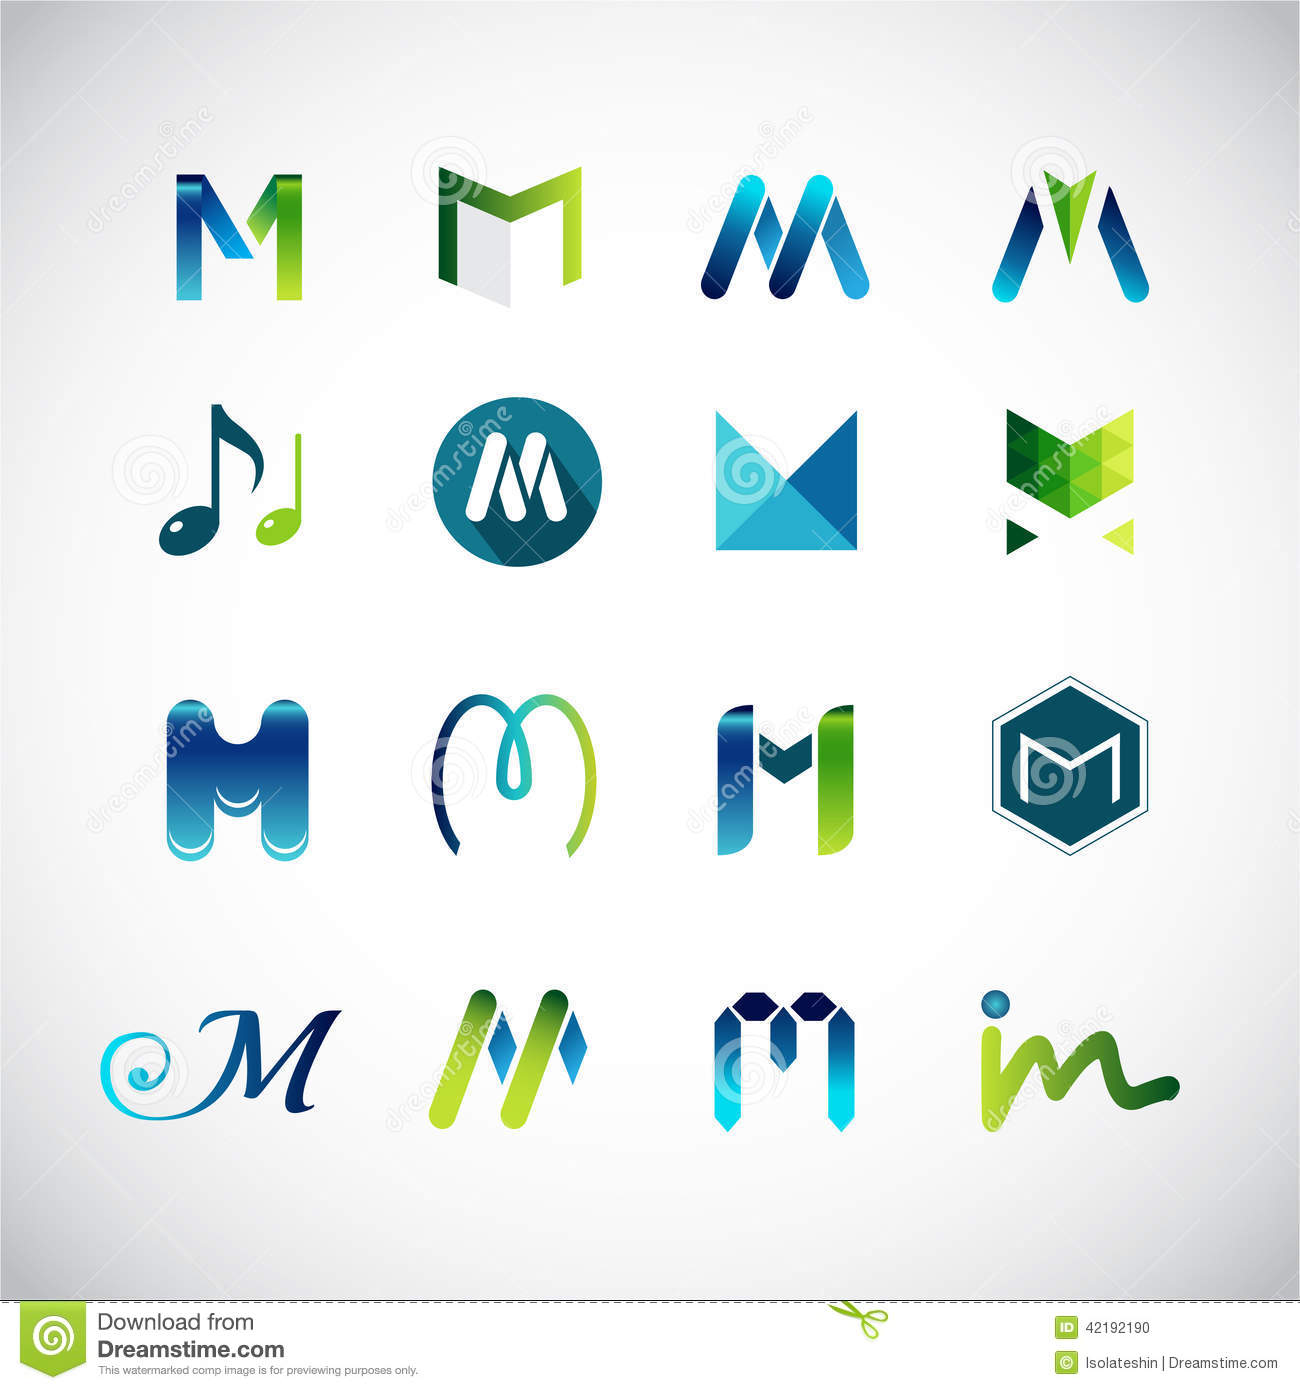 Abstract Icons Based On The Letter M Stock Vector - Image: 42192190